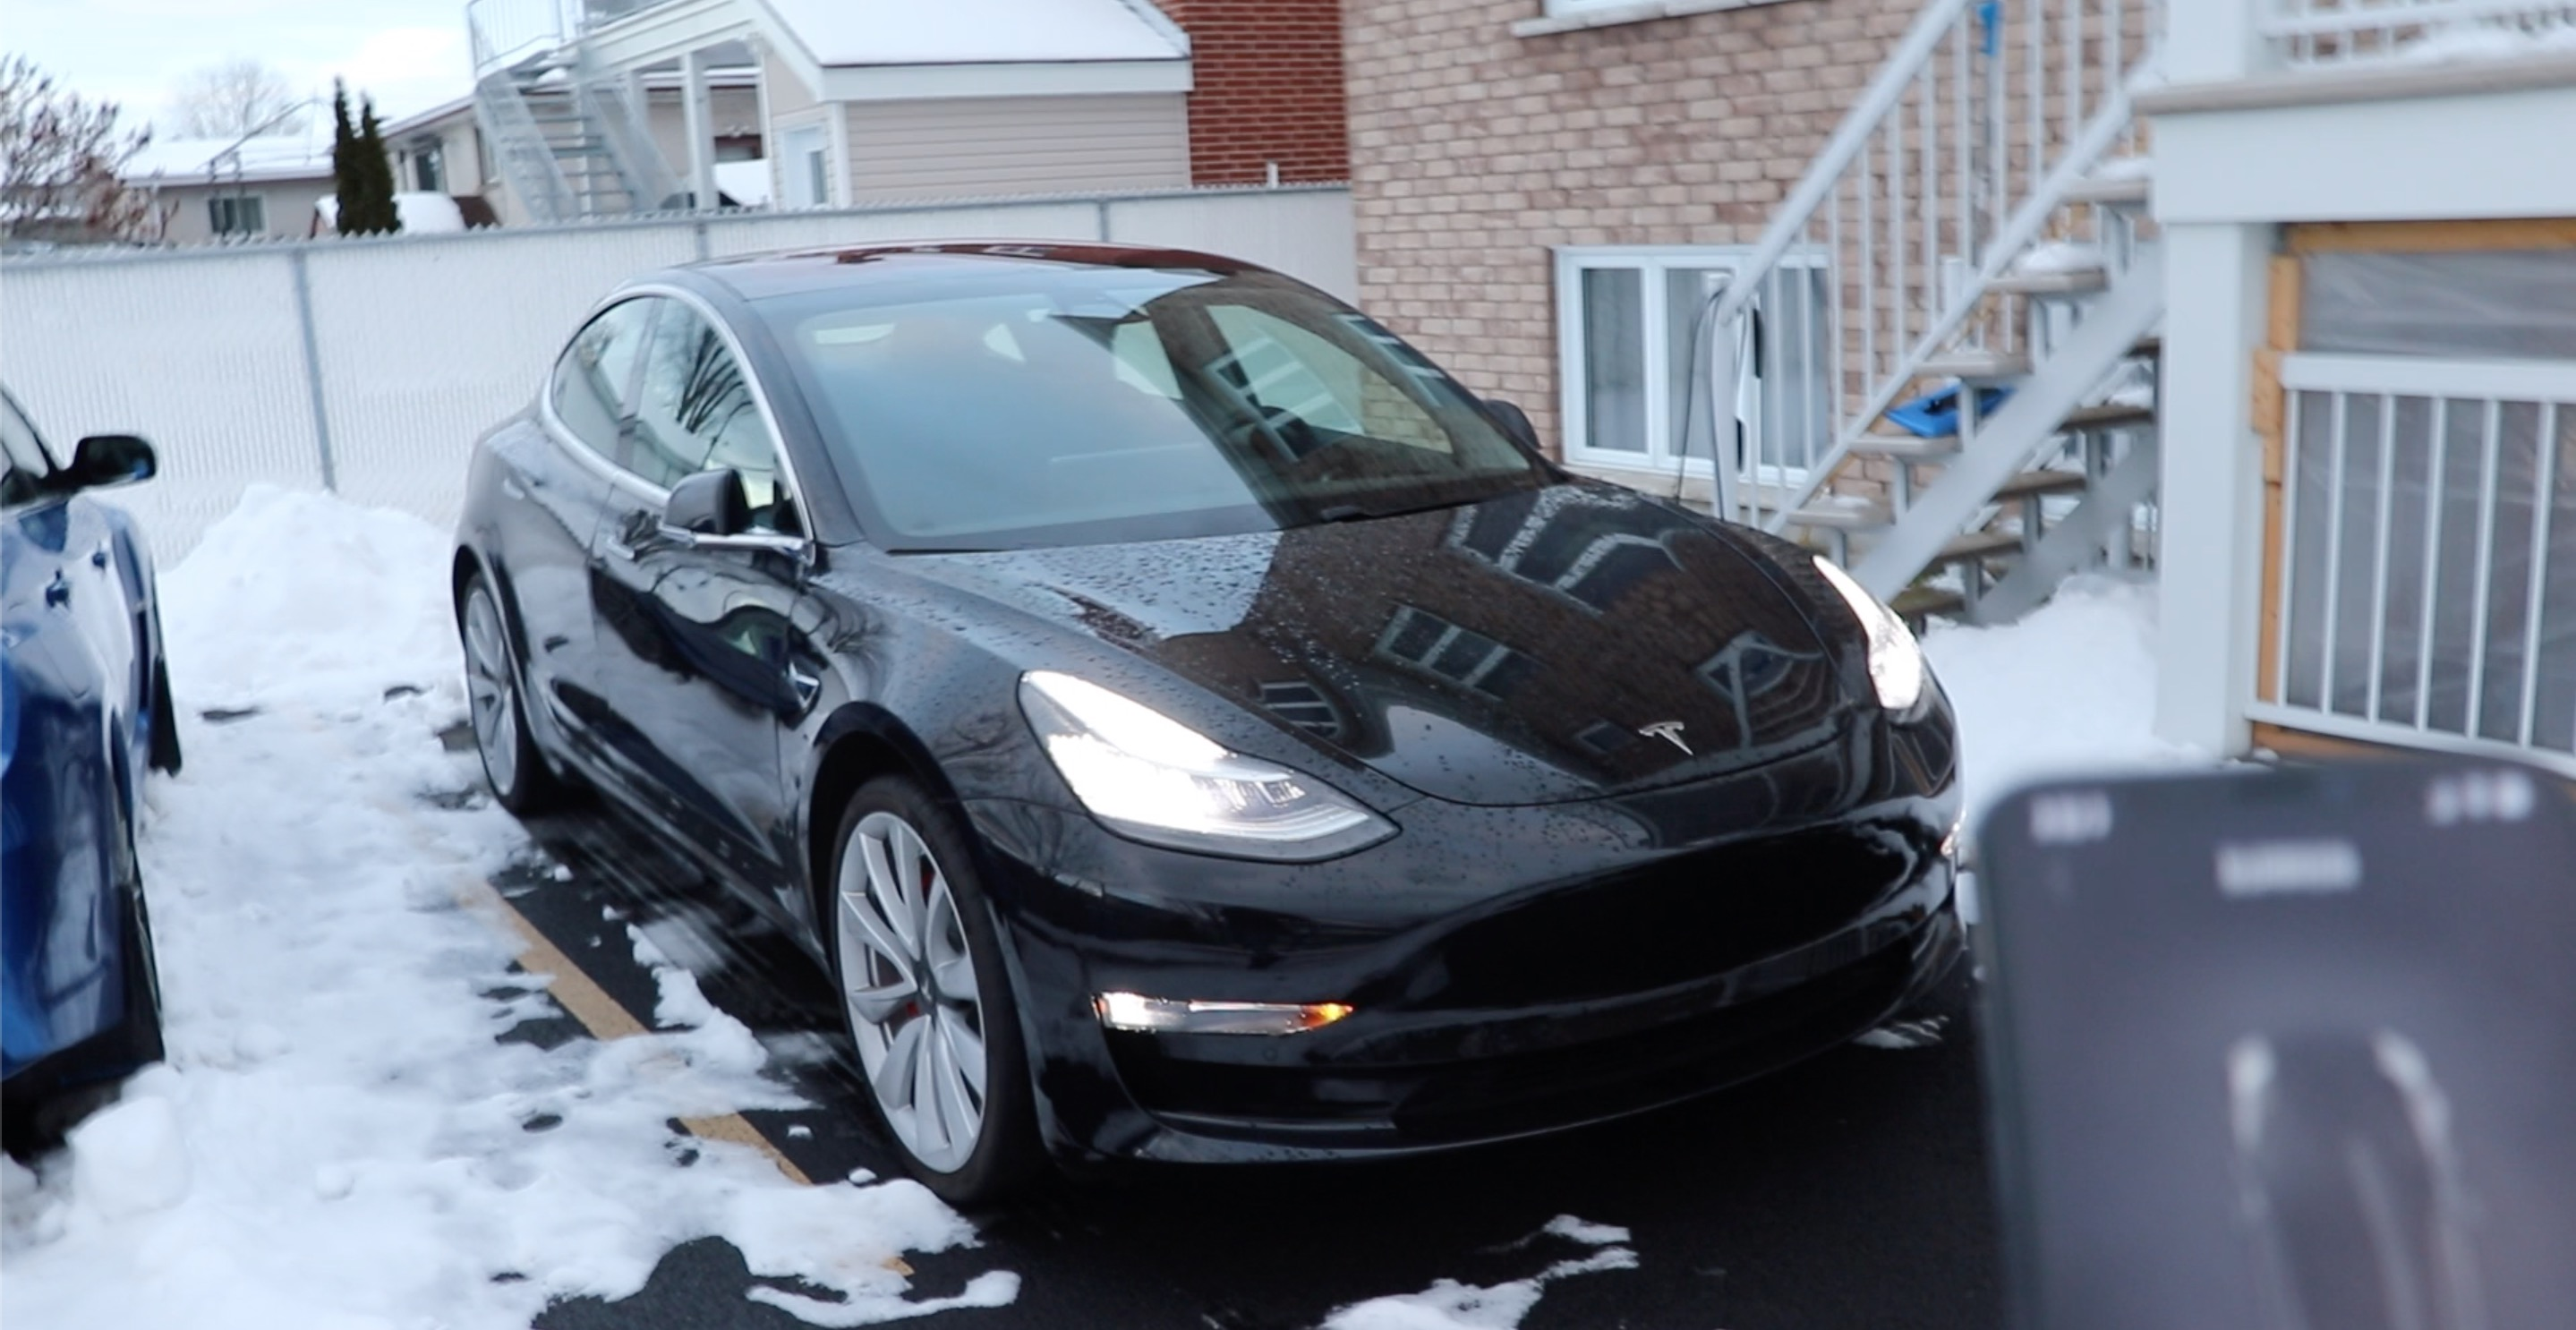 Tesla Model 3: prepare for winter with tires, mats, and more